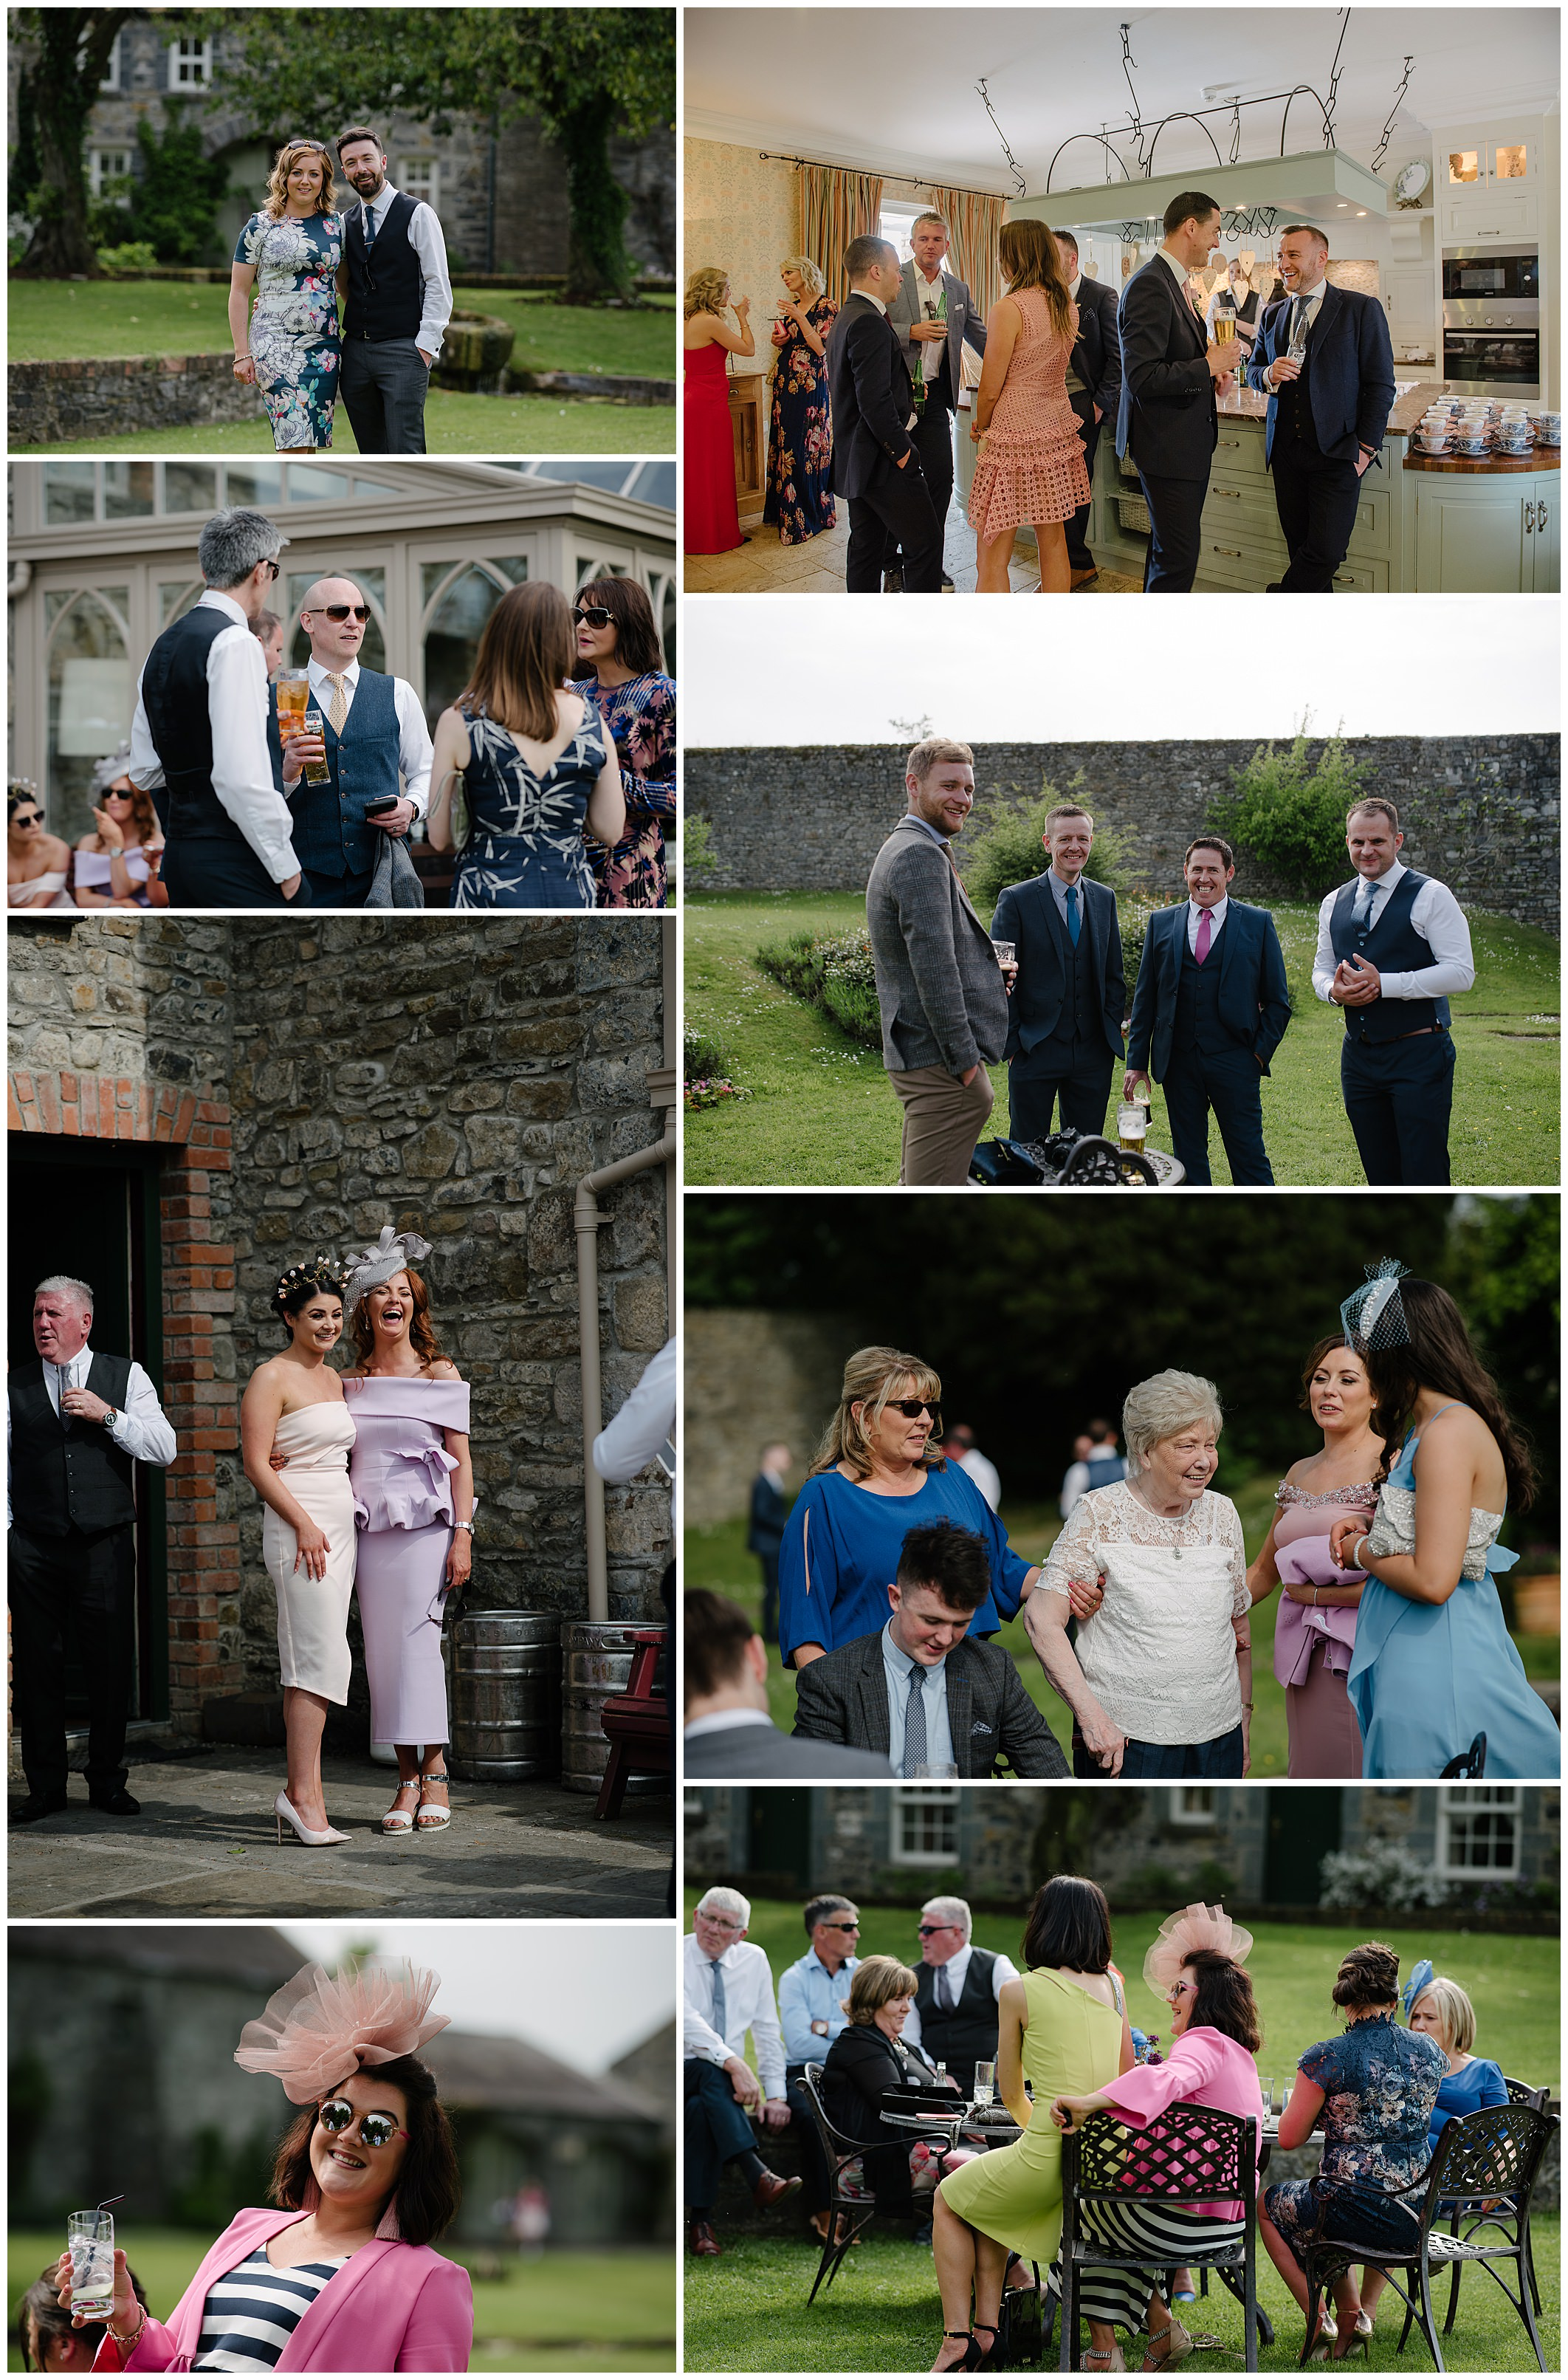 ballymagarvey-village-wedding-jude-browne-photography-124.jpg